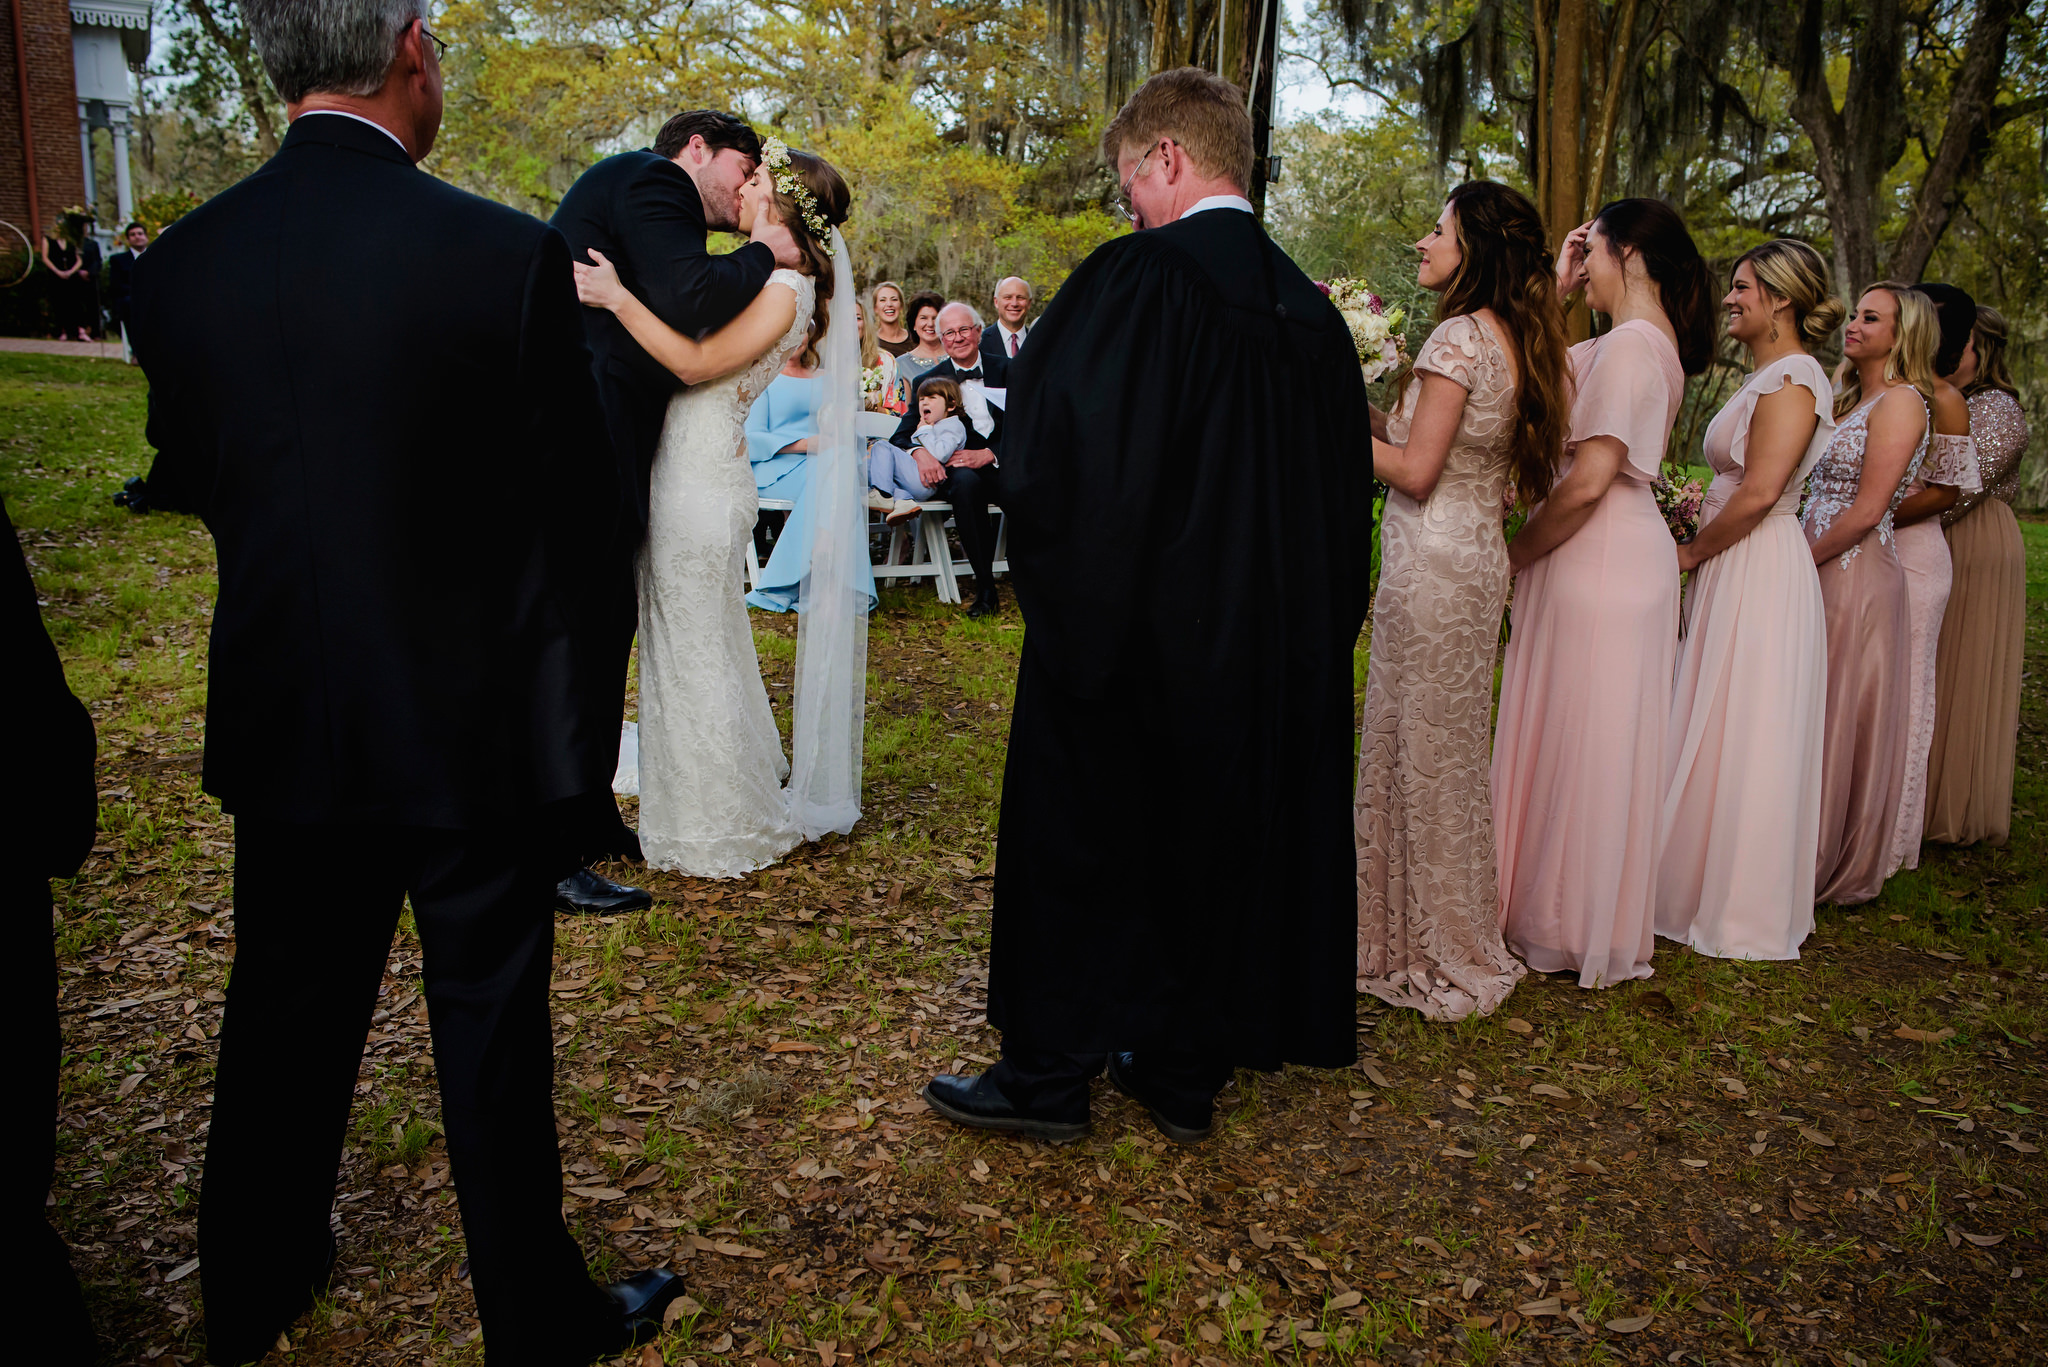 Natalie and Boot's wedding in Natchez, Mississippi